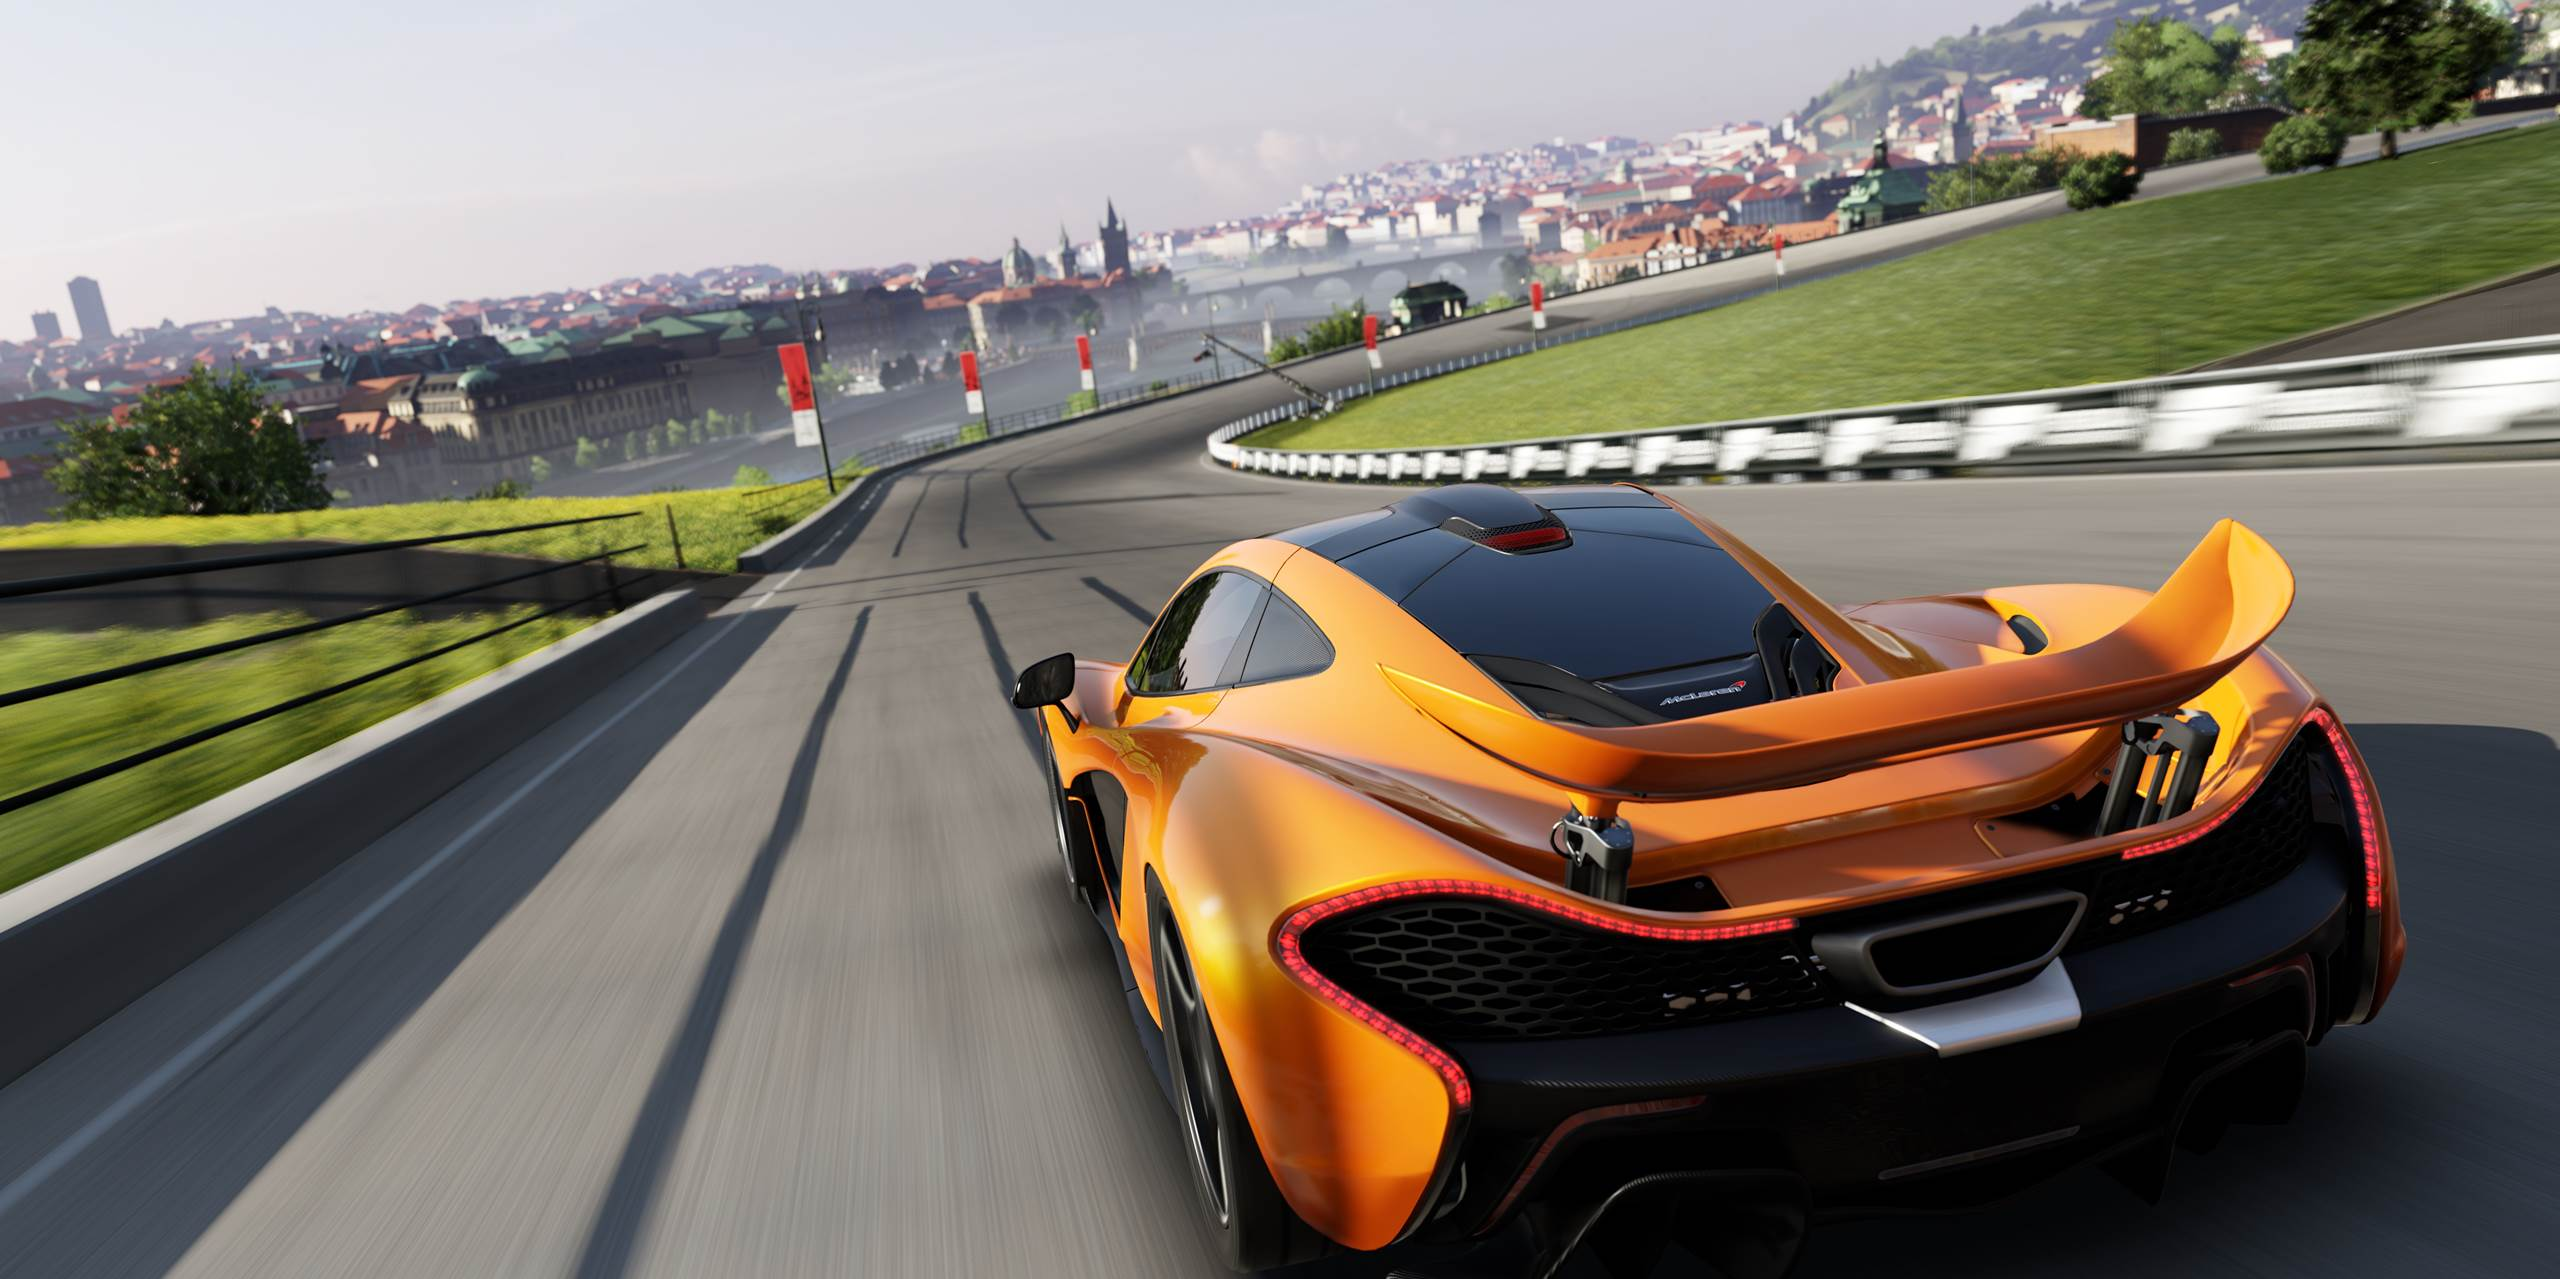 forza 5 wallpapers GamingBoltcom Video Game News Reviews 2560x1279